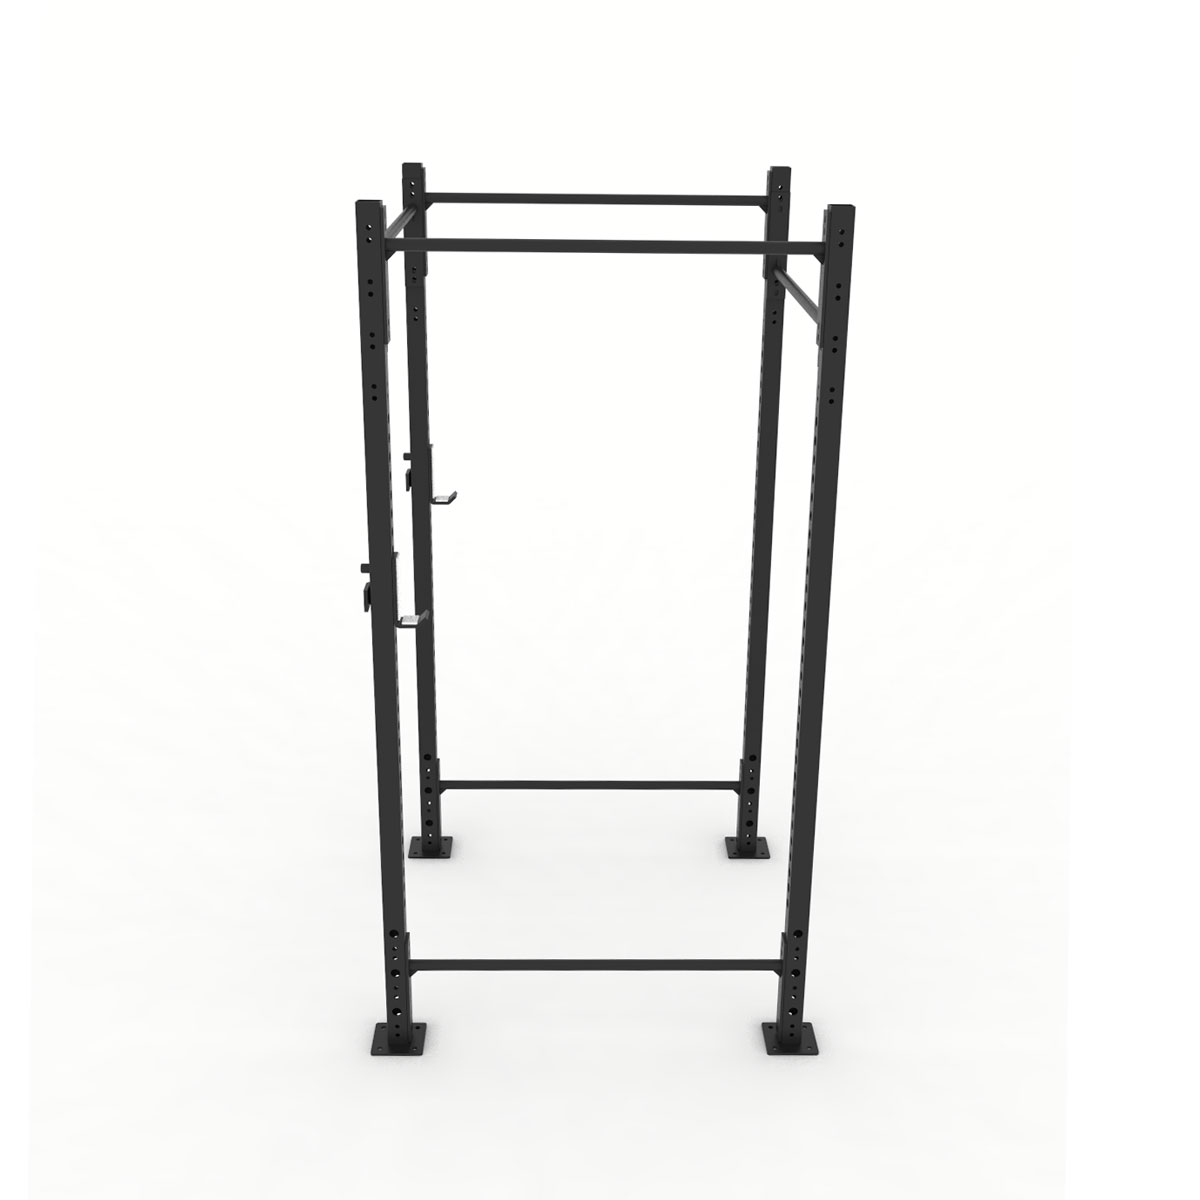 4x4 Freestanding Pull Up Rig